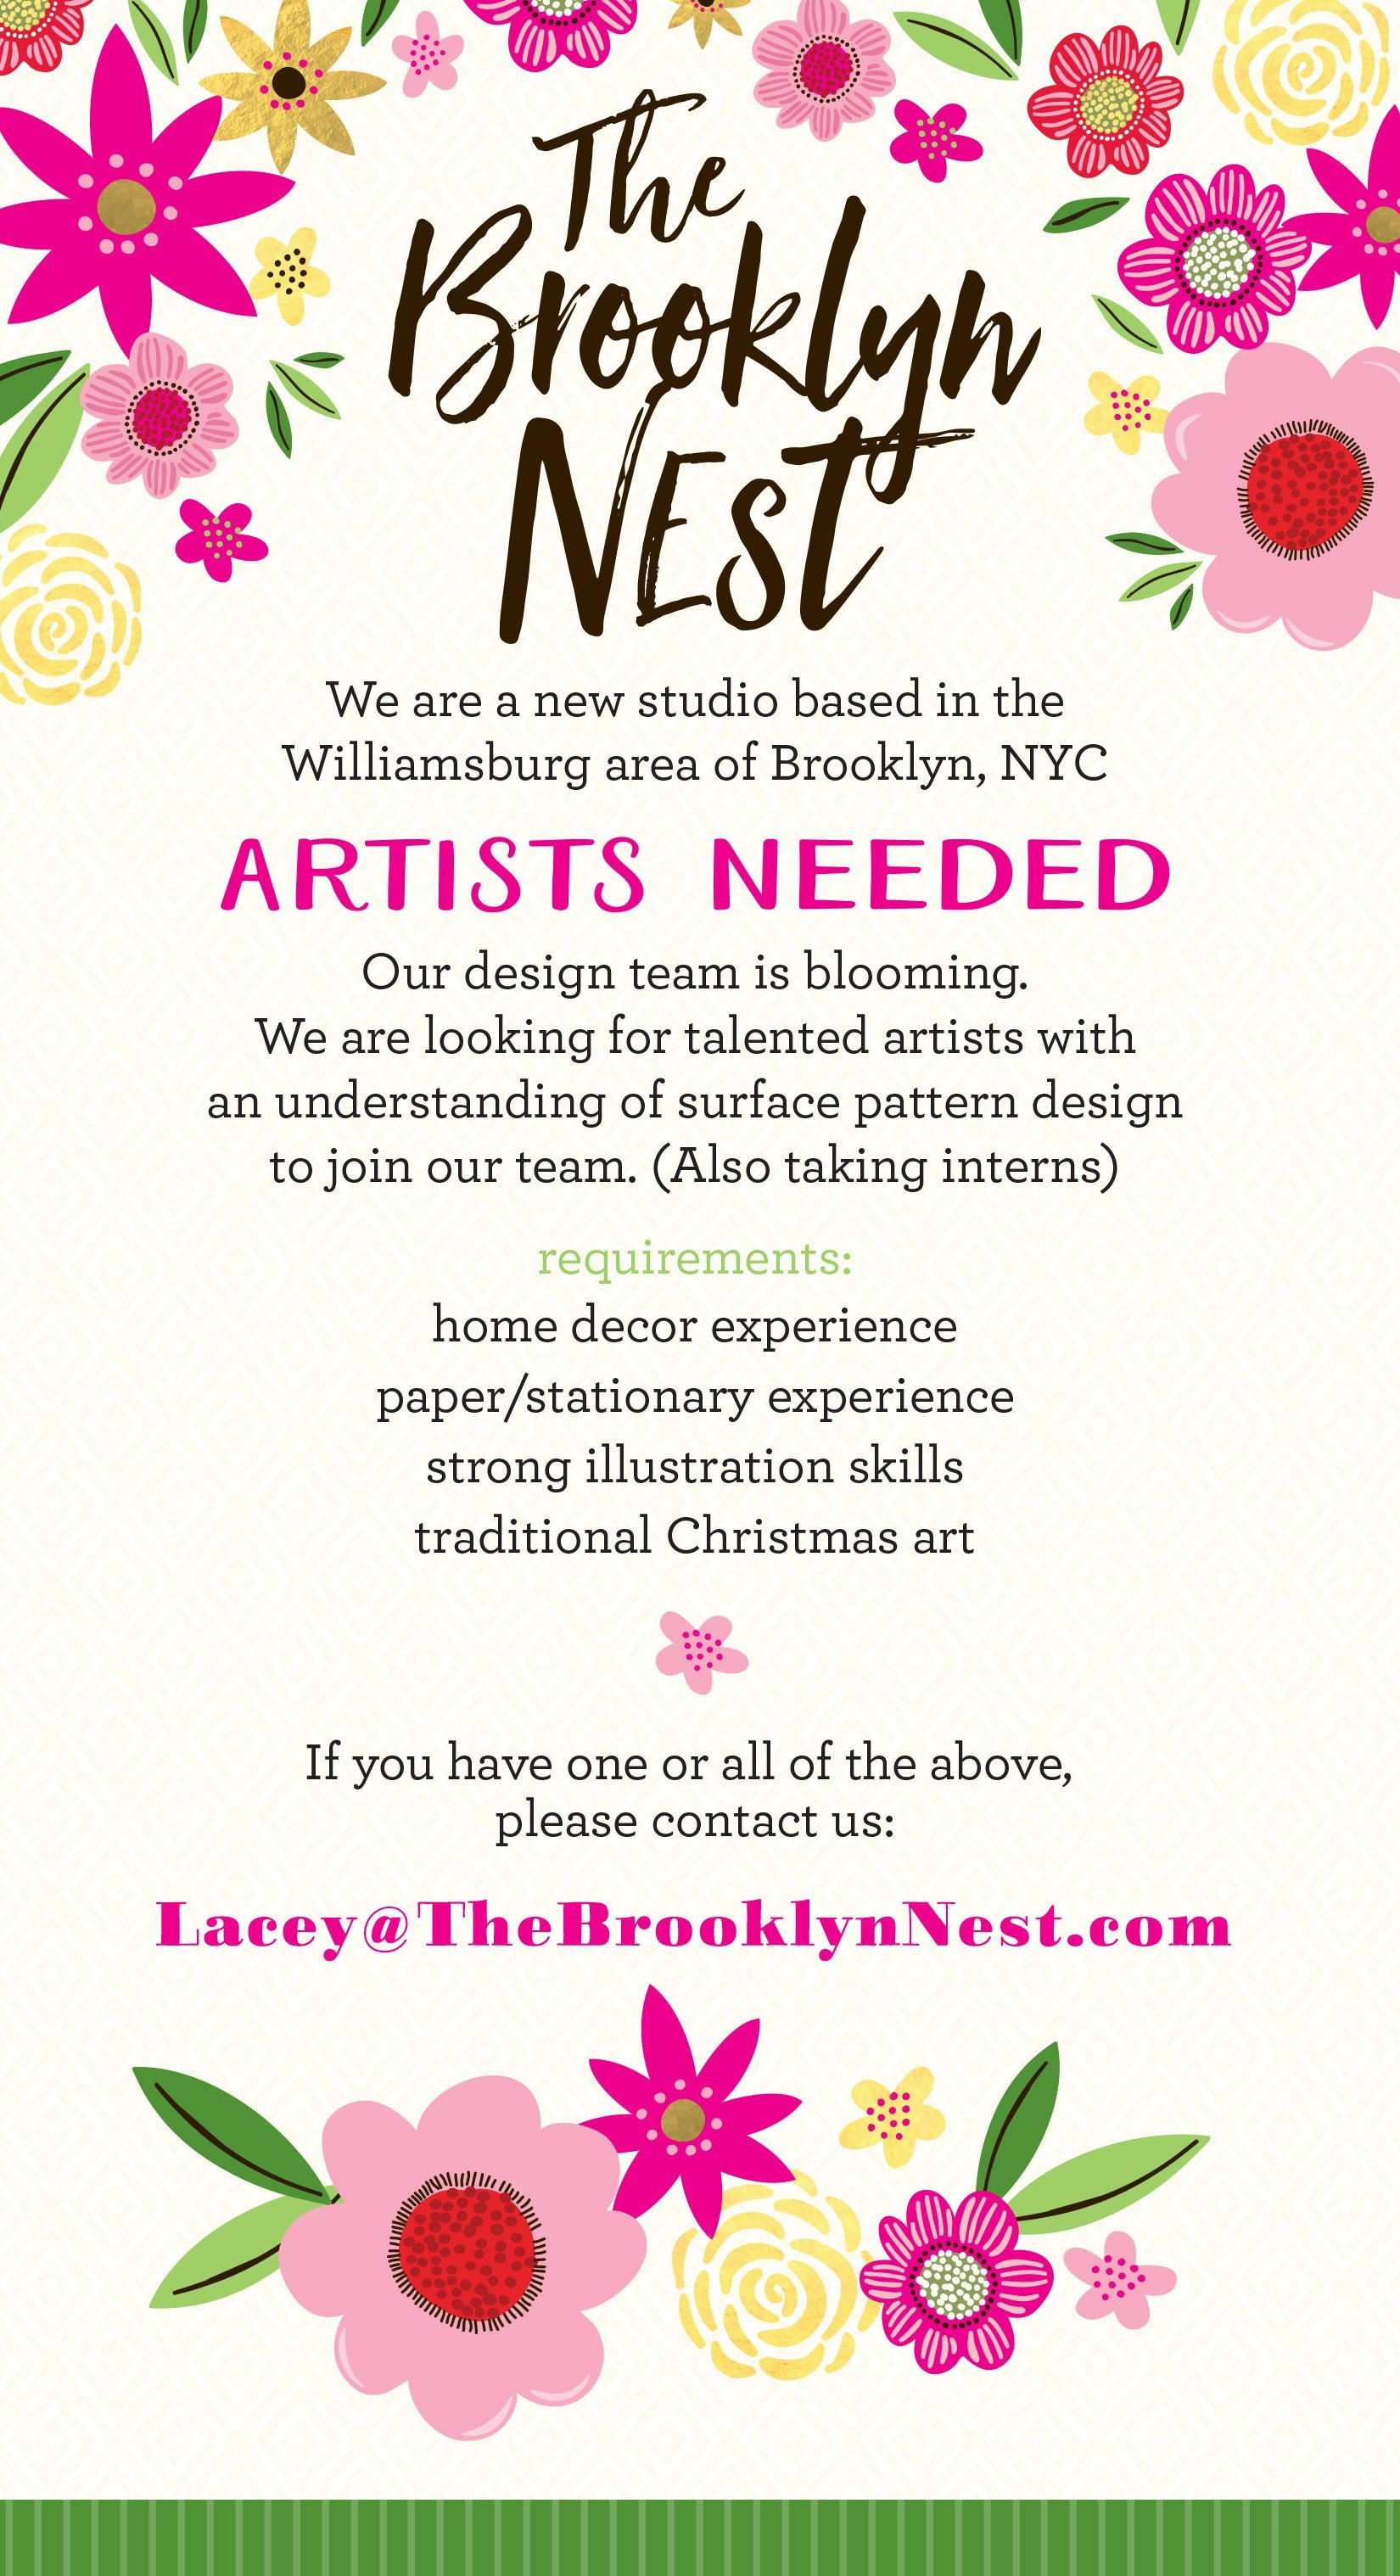 The brooklyn nest artists needed make it in design tbn ad kristyandbryce Image collections